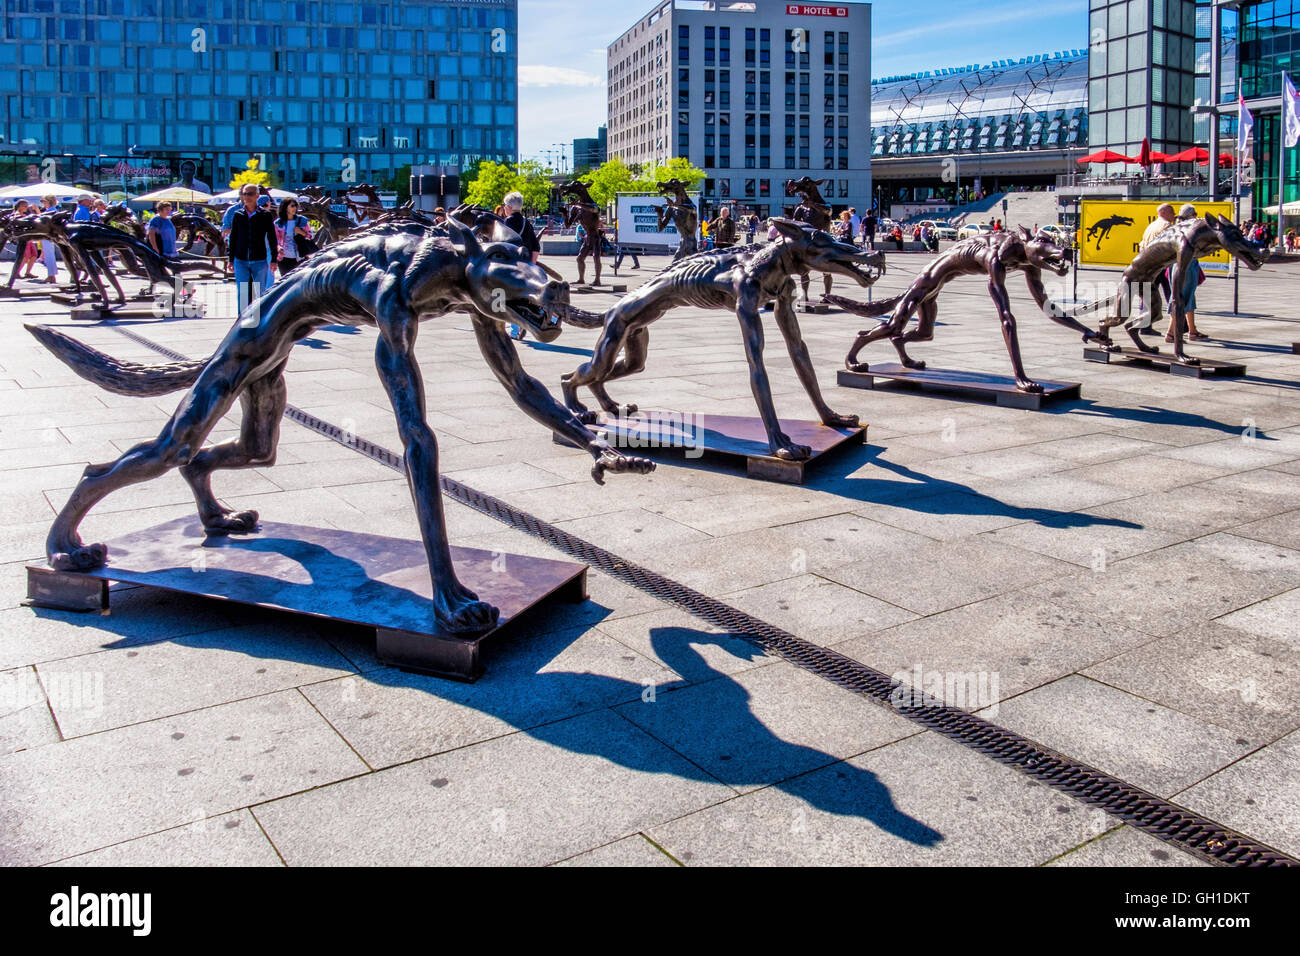 Berlin, Germany. 7th August 2016. Artist, Rainer Opolka's has installed 66 bronze wolves at the Washington Square - Stock Image